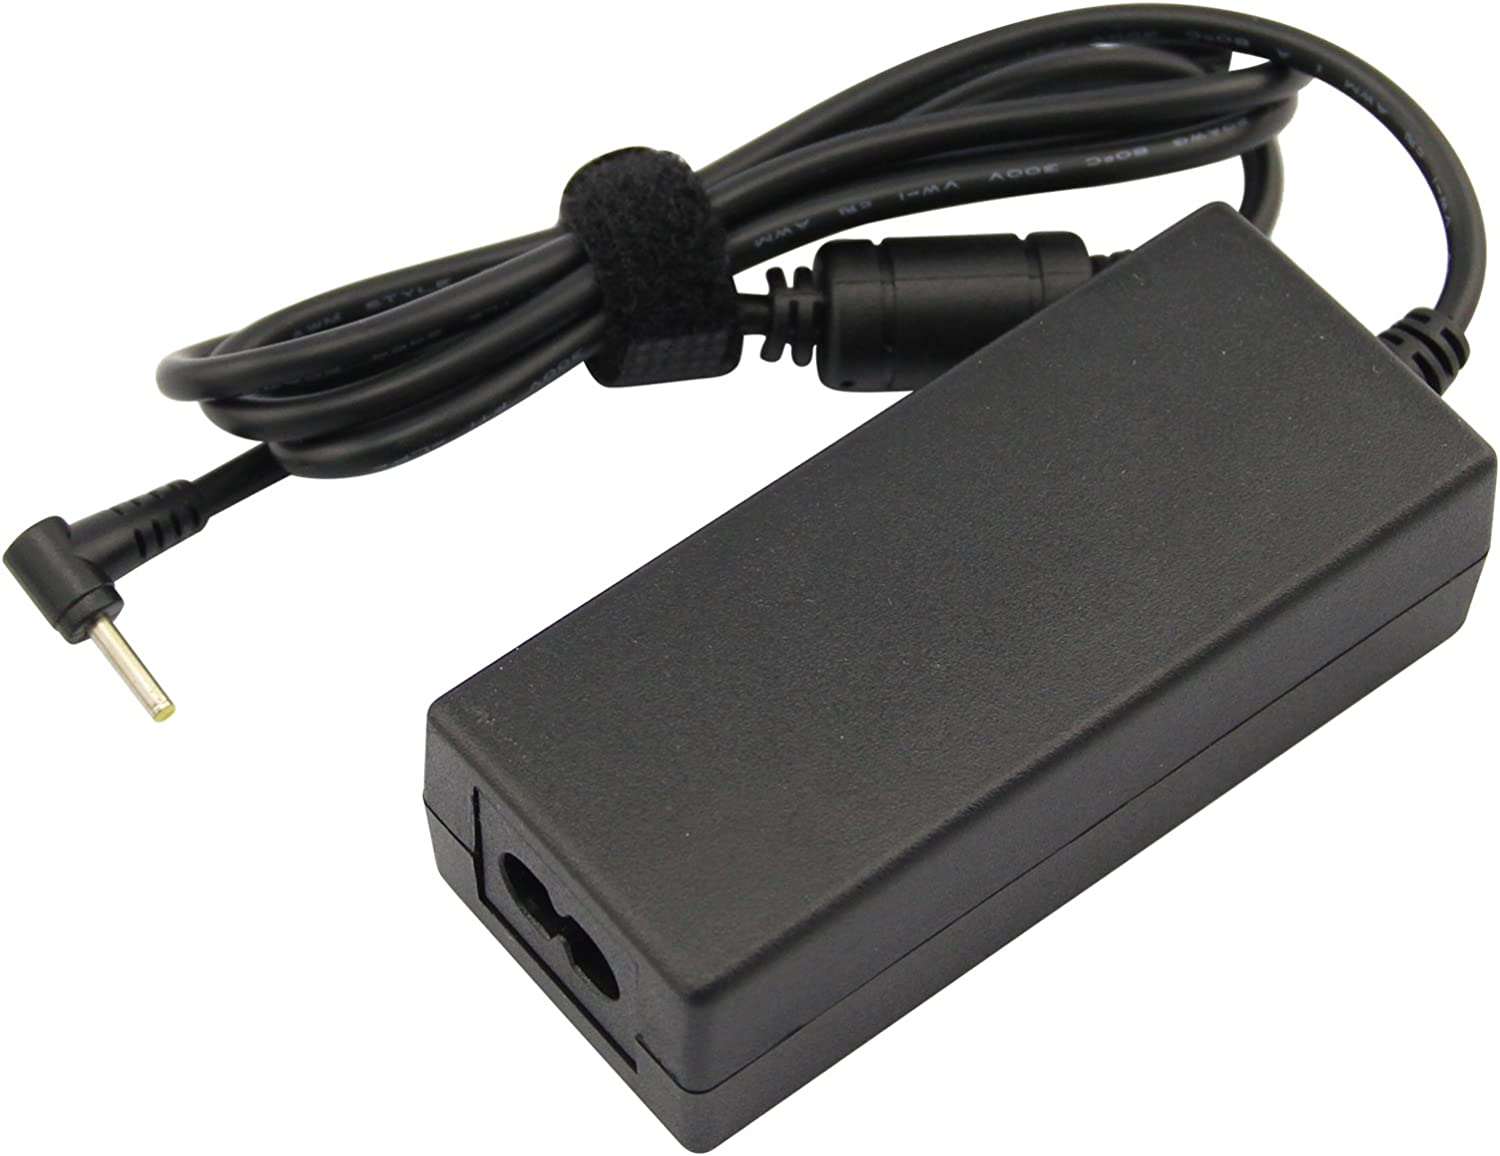 Futurebatt 40W AC Adapter Charger for ASUS Eee PC 1005pe 1005 1005ha 1005hab 1005P 1001P 1001PXD 1008HA 1008P 1101HA 1201N 1015PE 1018P 1201HAB 1215N 1201PN 1225B 1225C 1016P Power Supply Cord